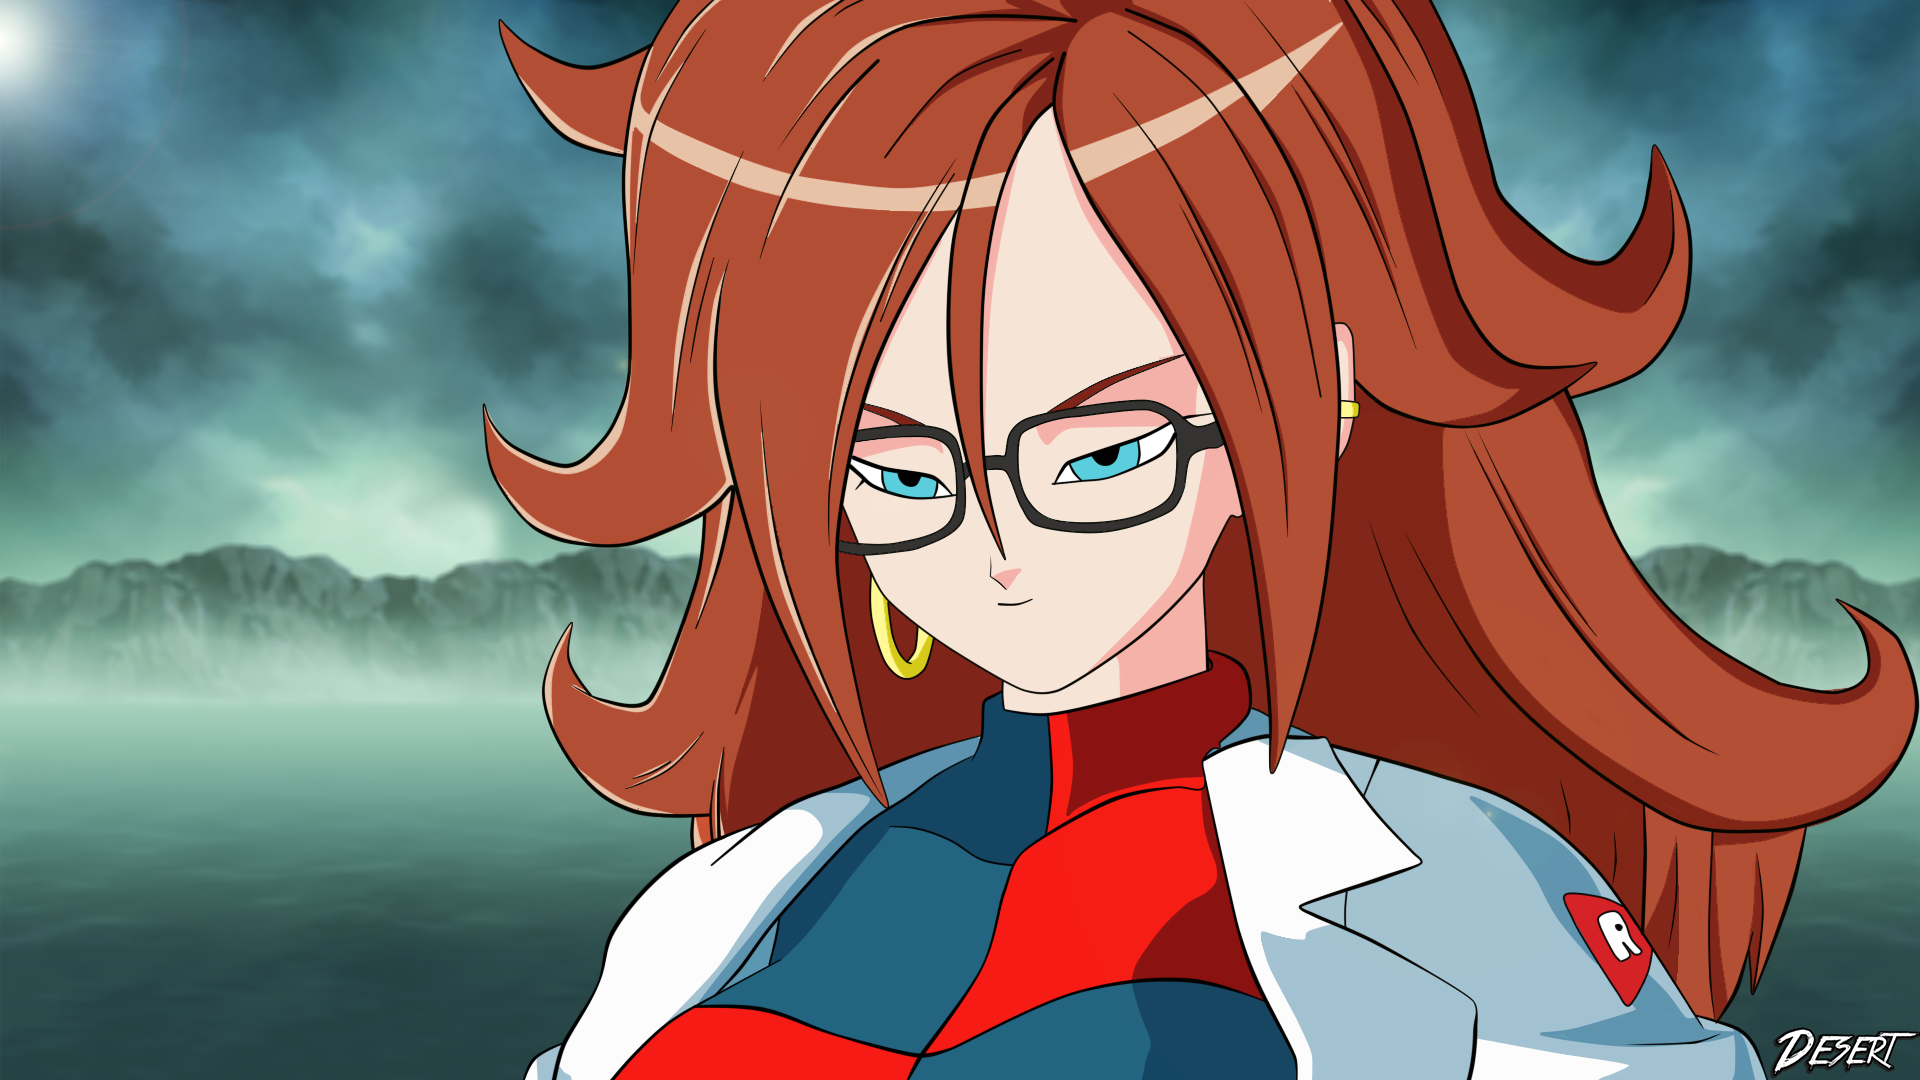 Android 21 Wallpaper By Desertwiggle On Deviantart